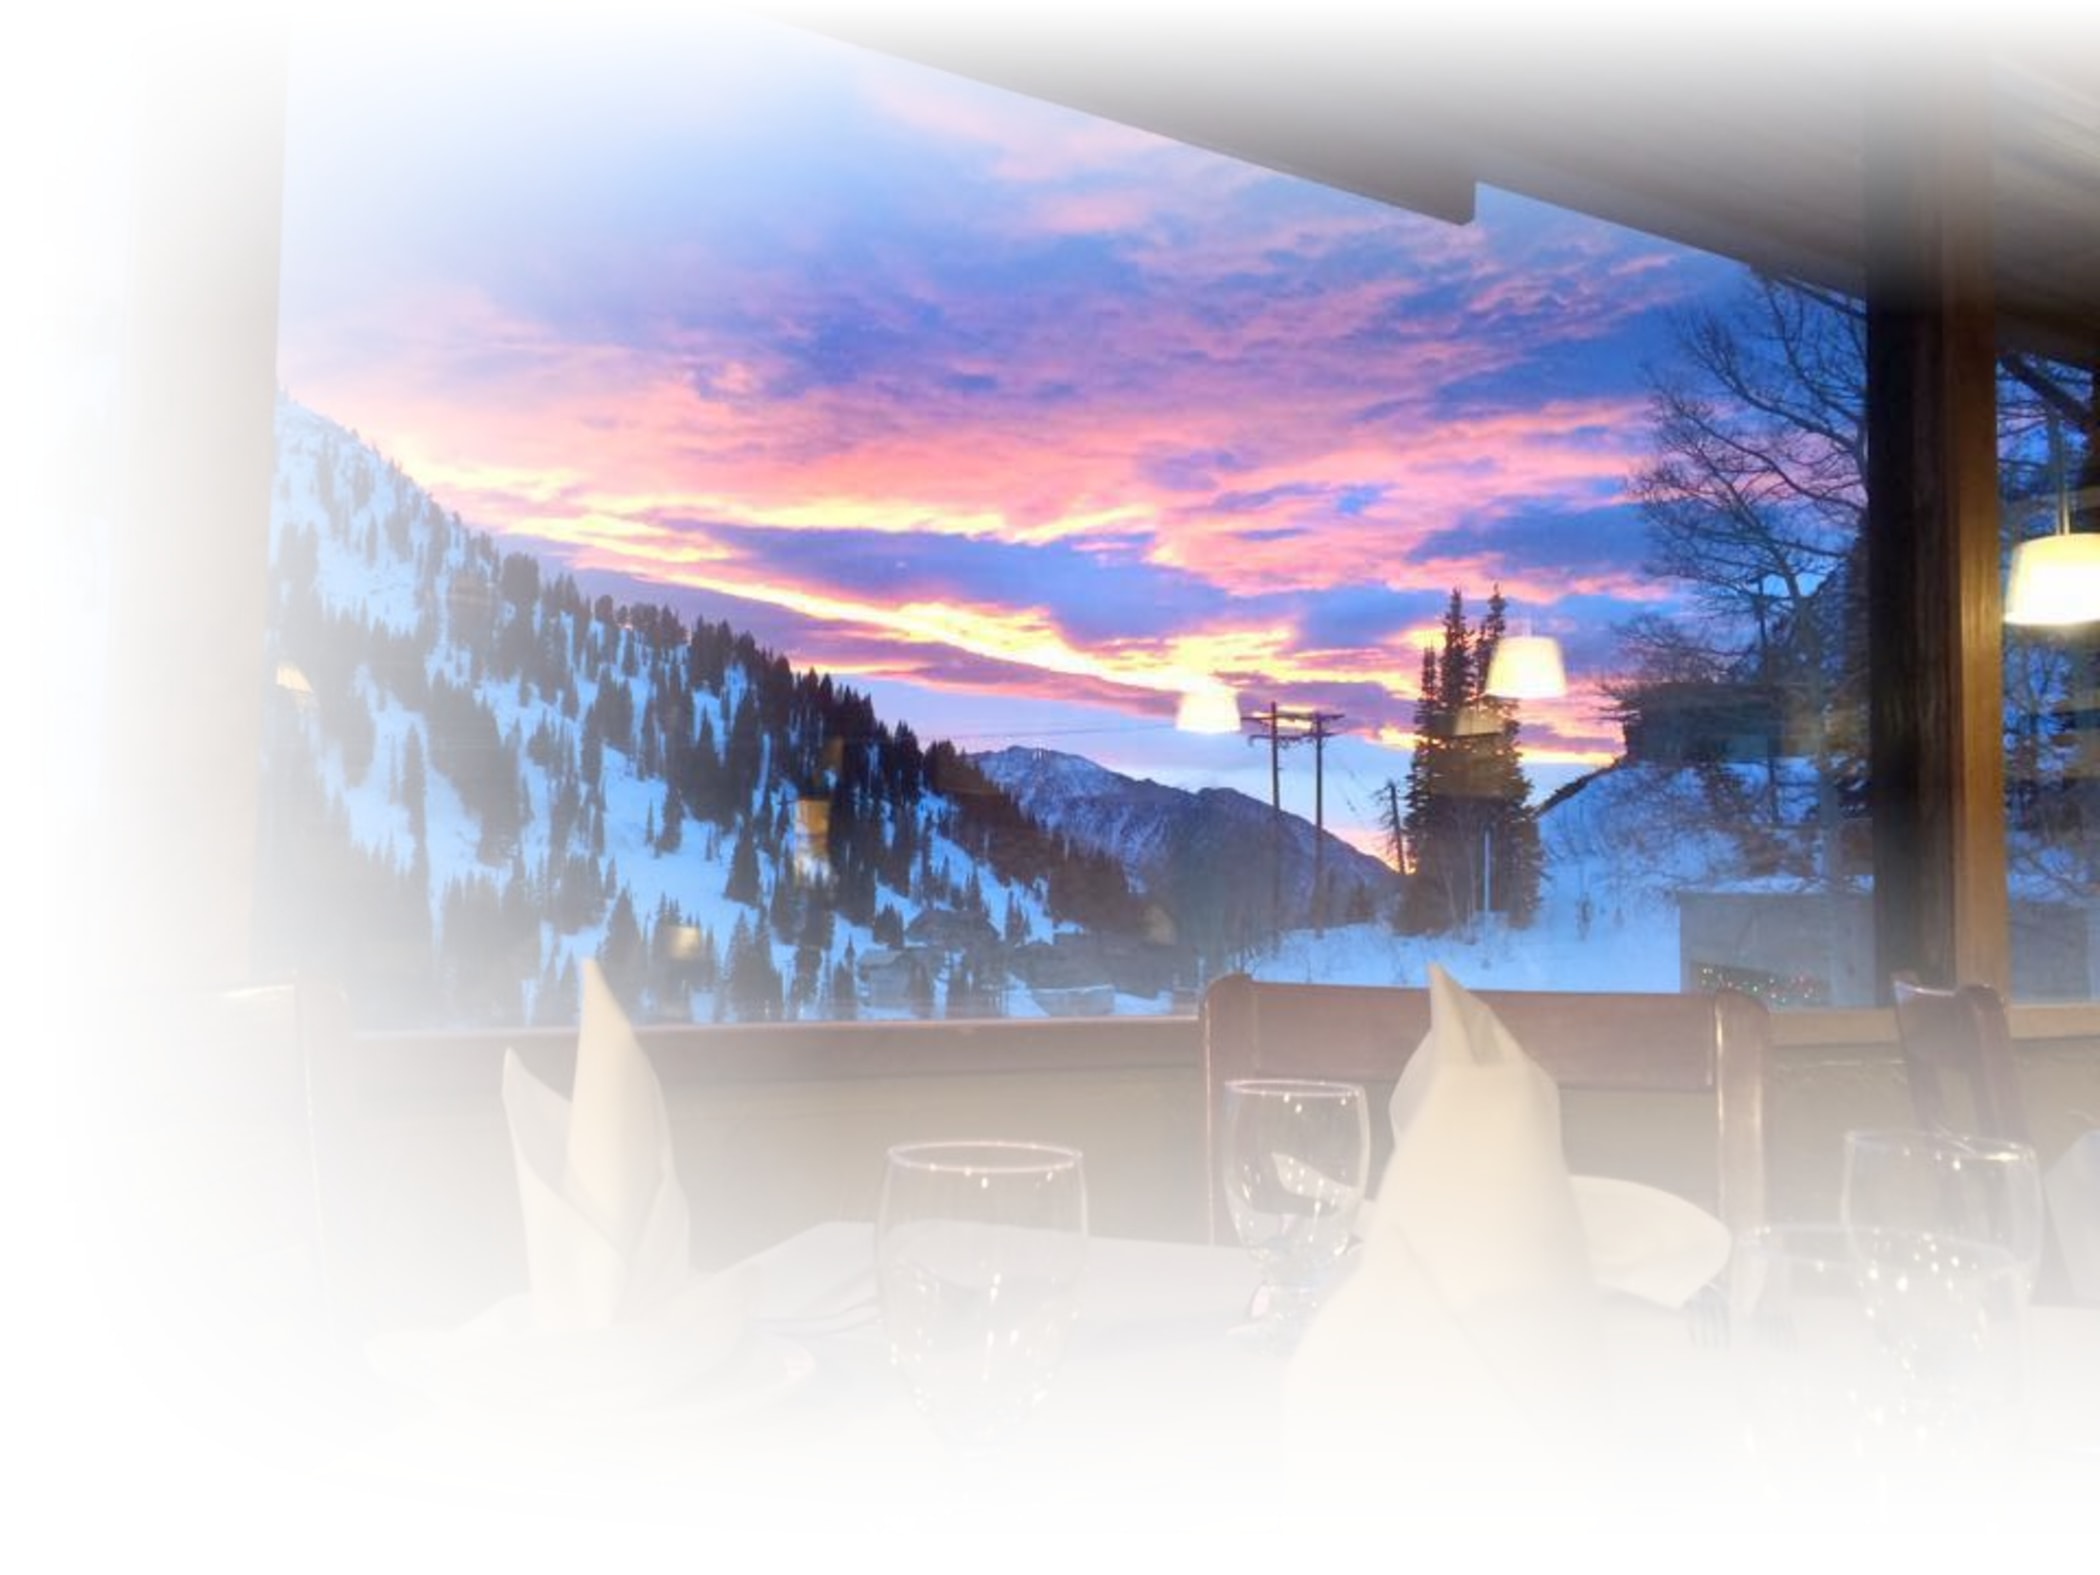 A view of the sunset from the Shallow Shaft restaurant in Alta Utah